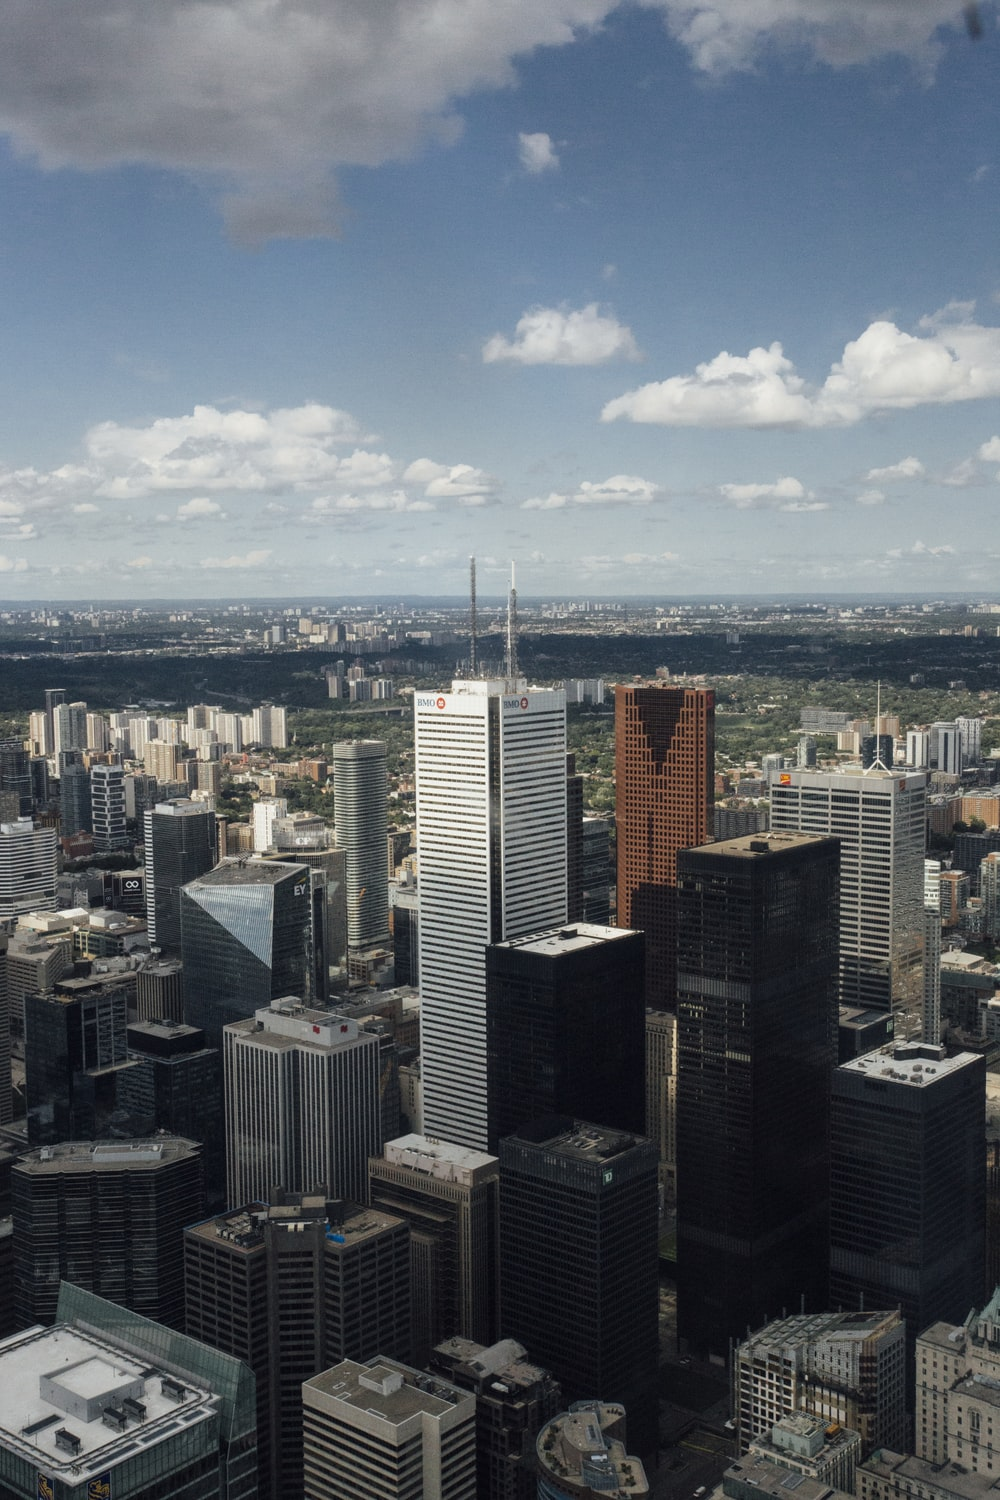 wide-angle photography of high-rise buildings during daytime